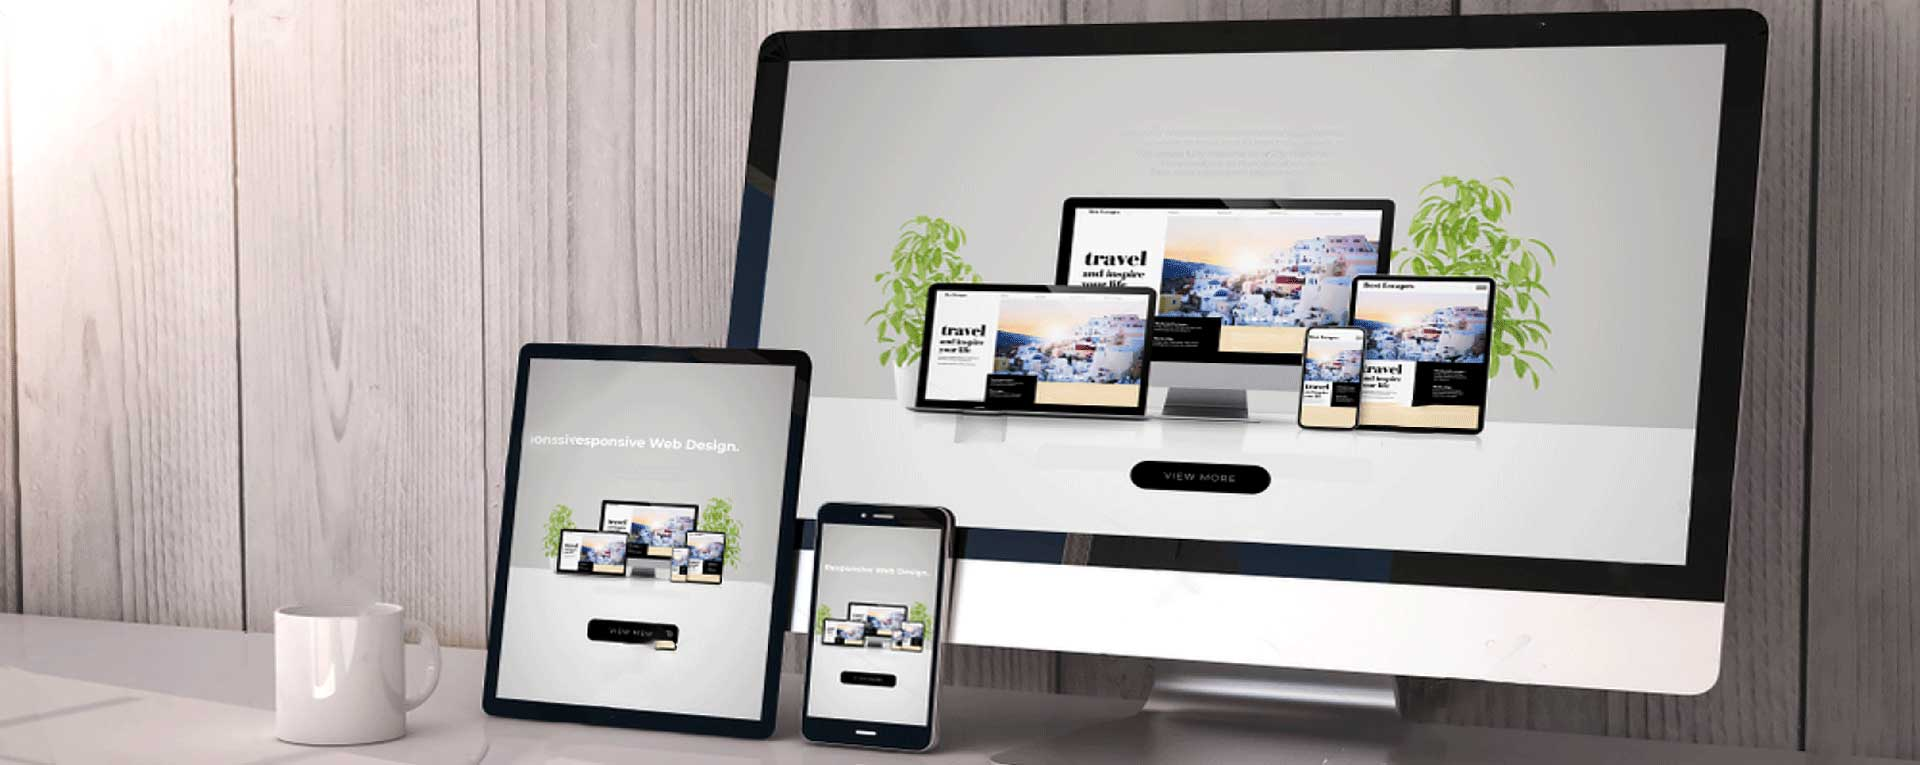 We have Creative Web Solutions